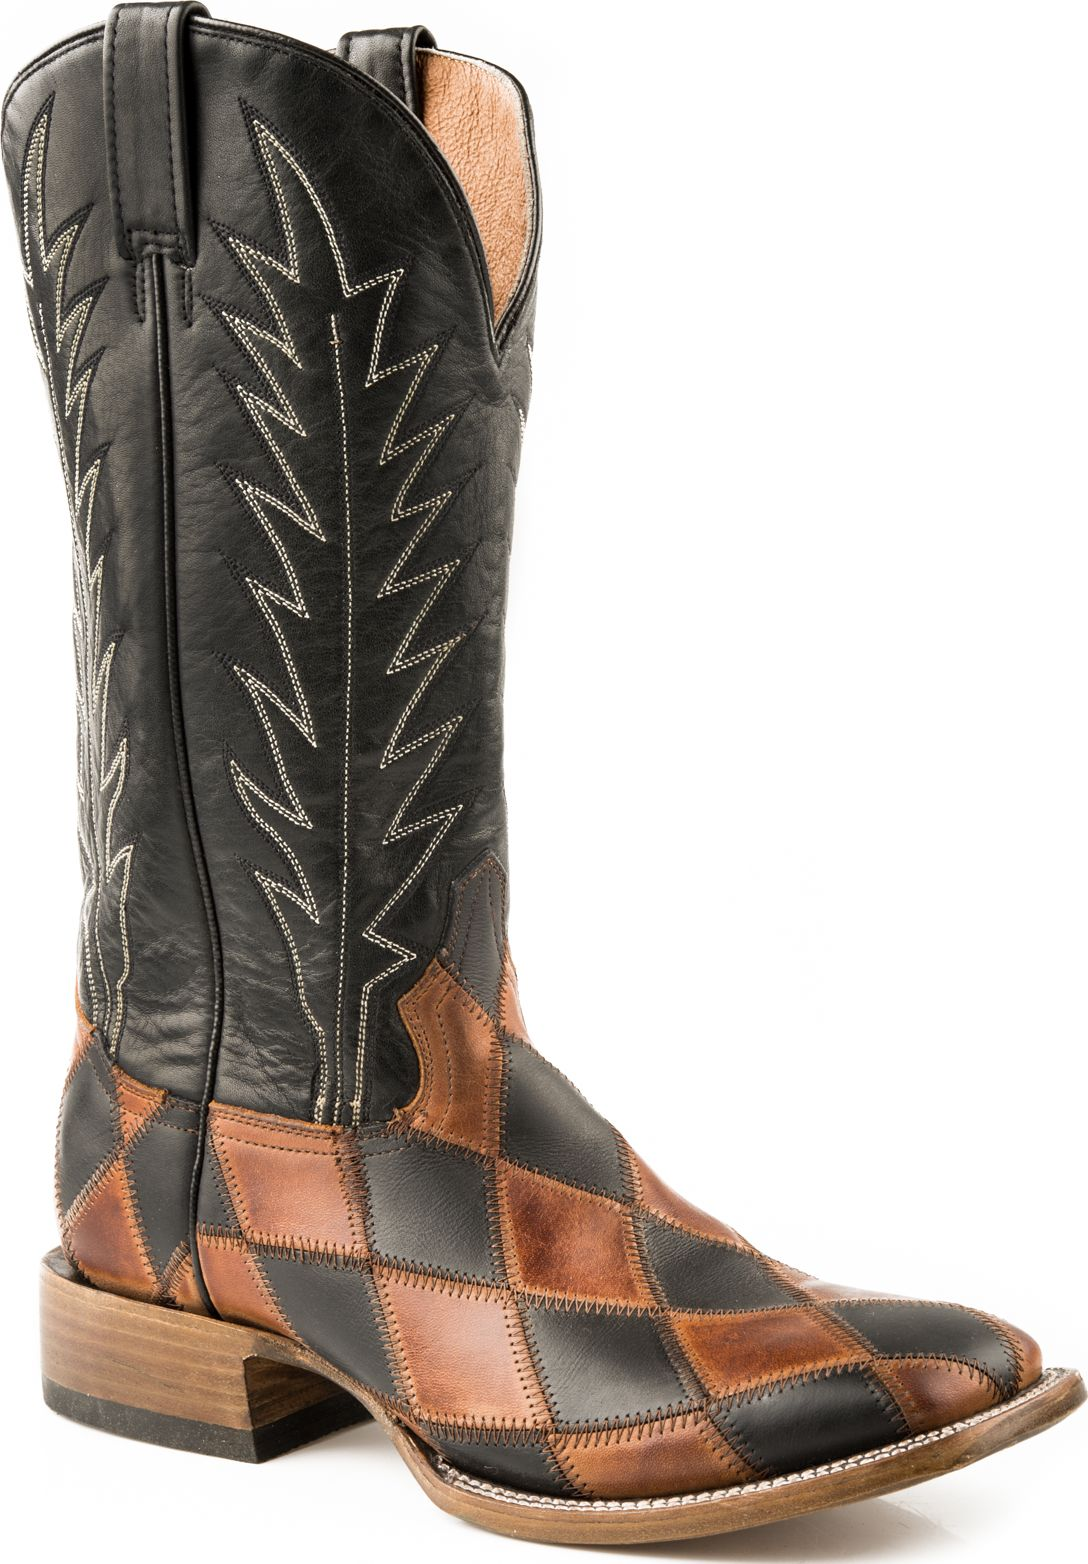 Stetson Mens Western Cowboy Boots Square Toe Patchwork 0751 Brown Medium (D, M) at Sears.com